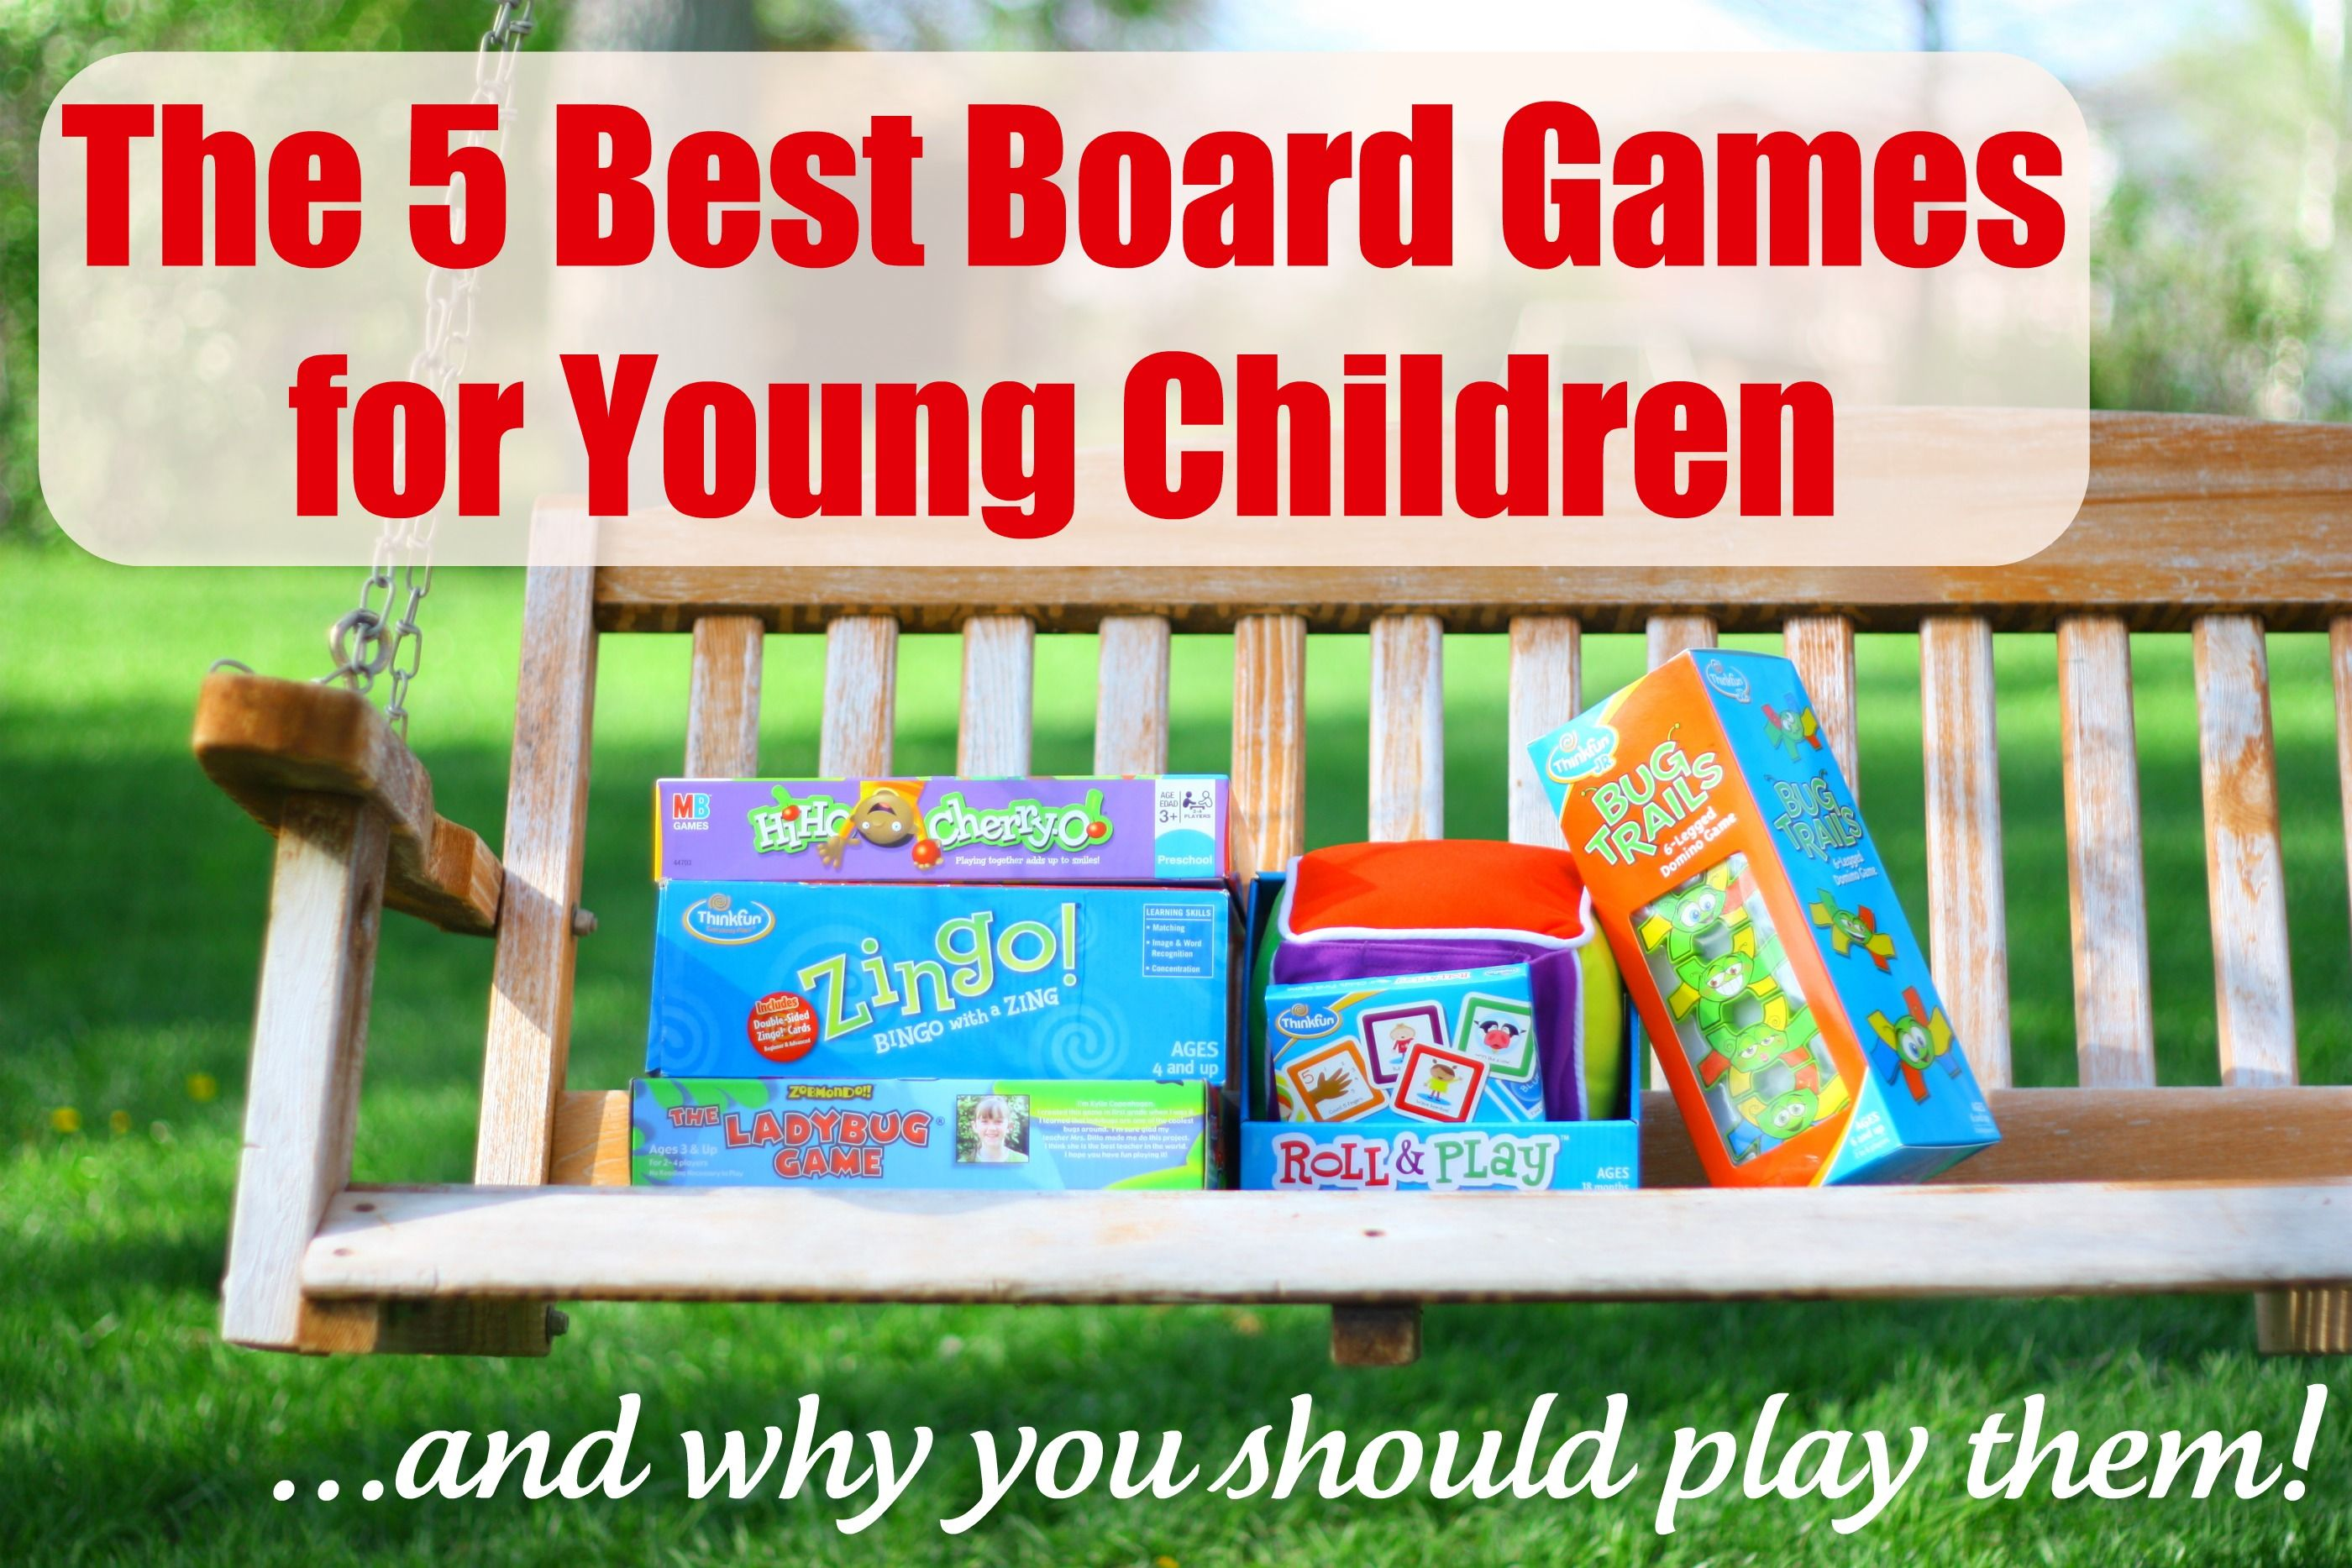 Worksheet Phonics Games For 5 Year Olds 1000 images about board games on pinterest plays spelling and card boards